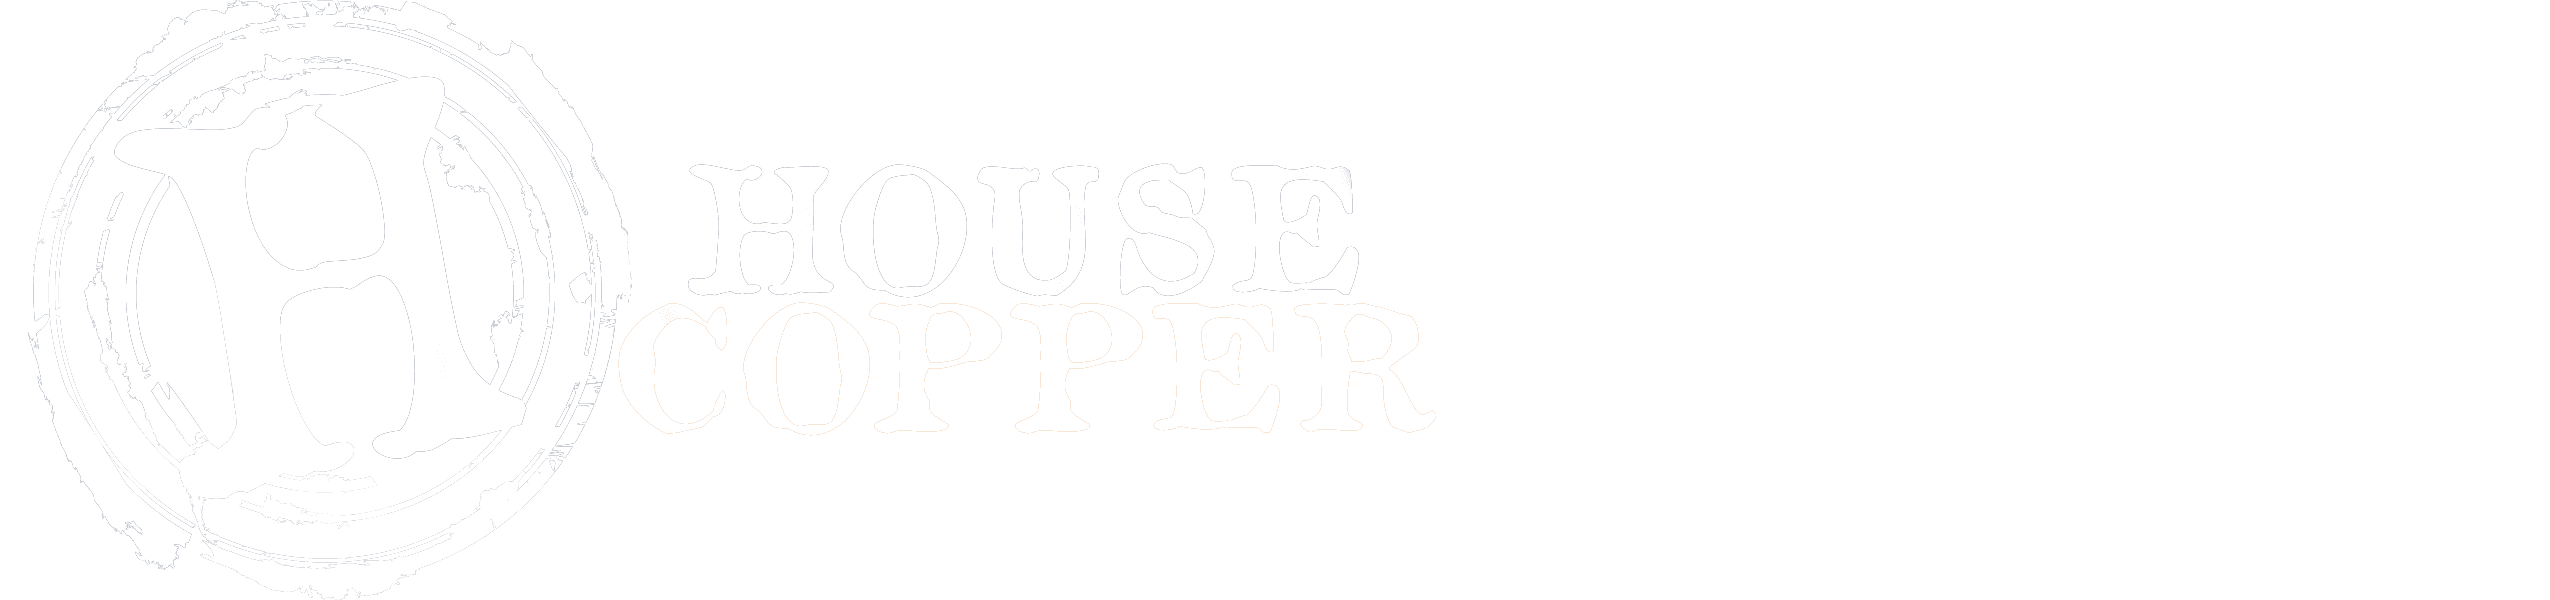 House Copper & Cookware